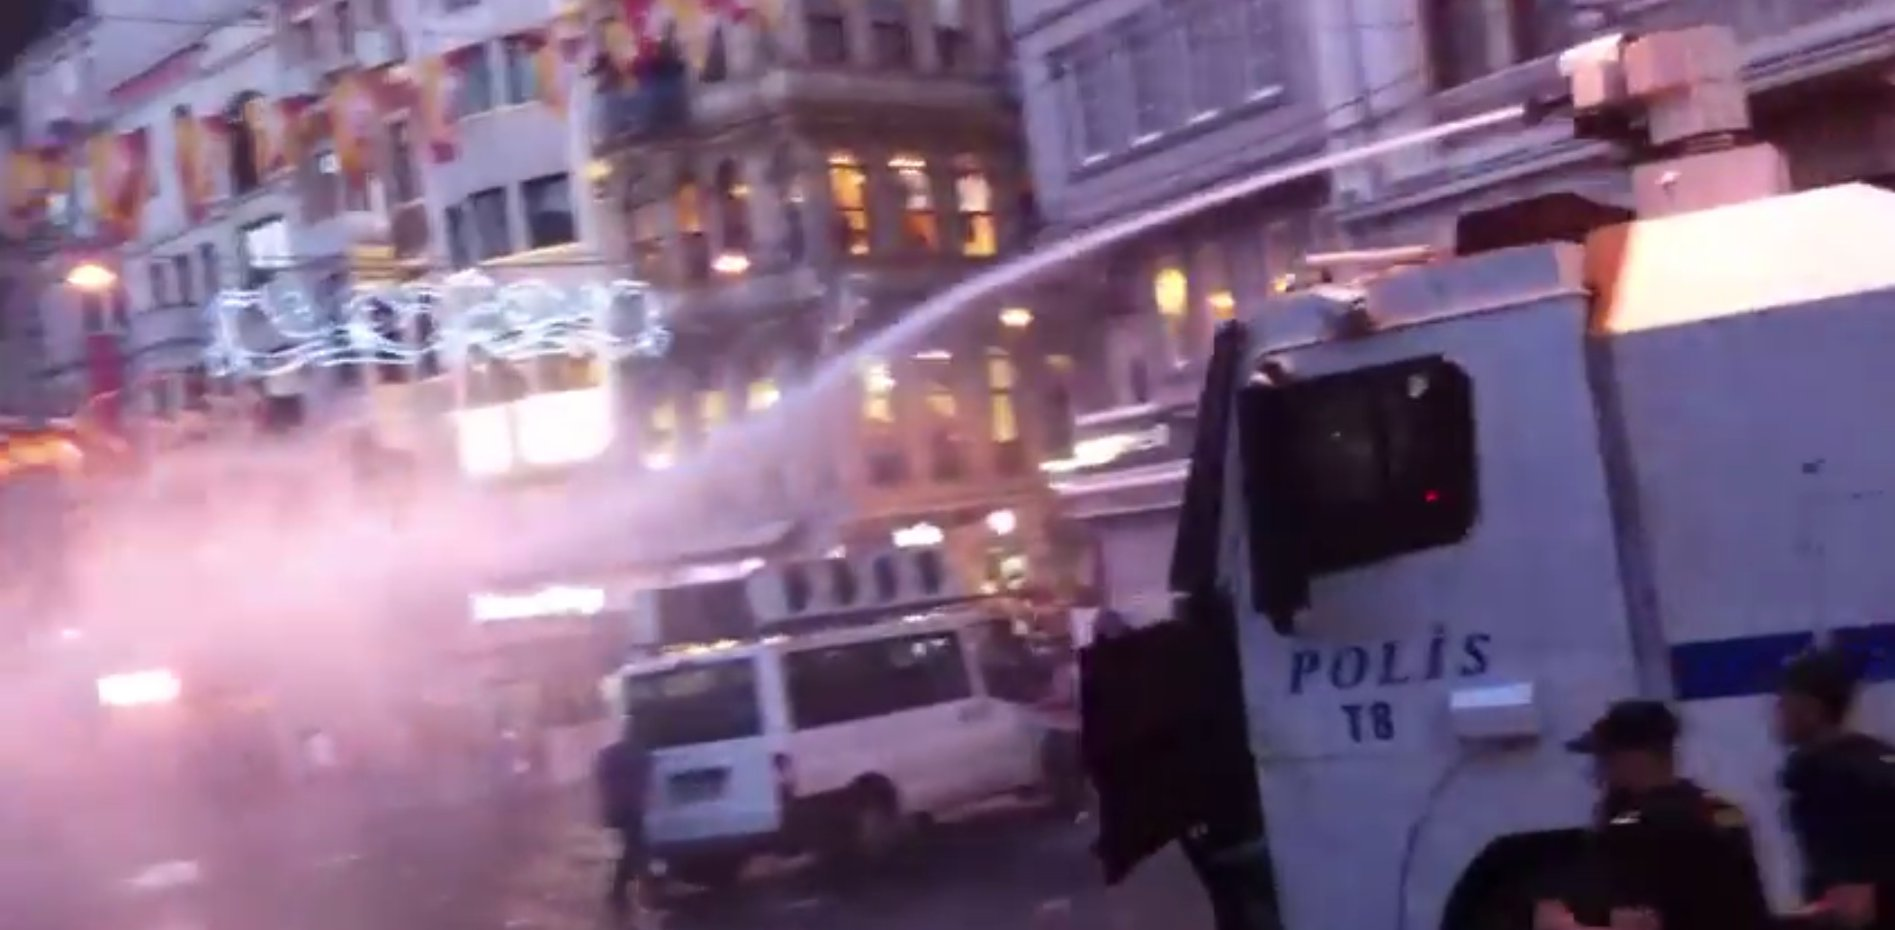 Screenshot_dbate.de_FLASH_Istanbul_Proteste_Selbstmordattentat_2015